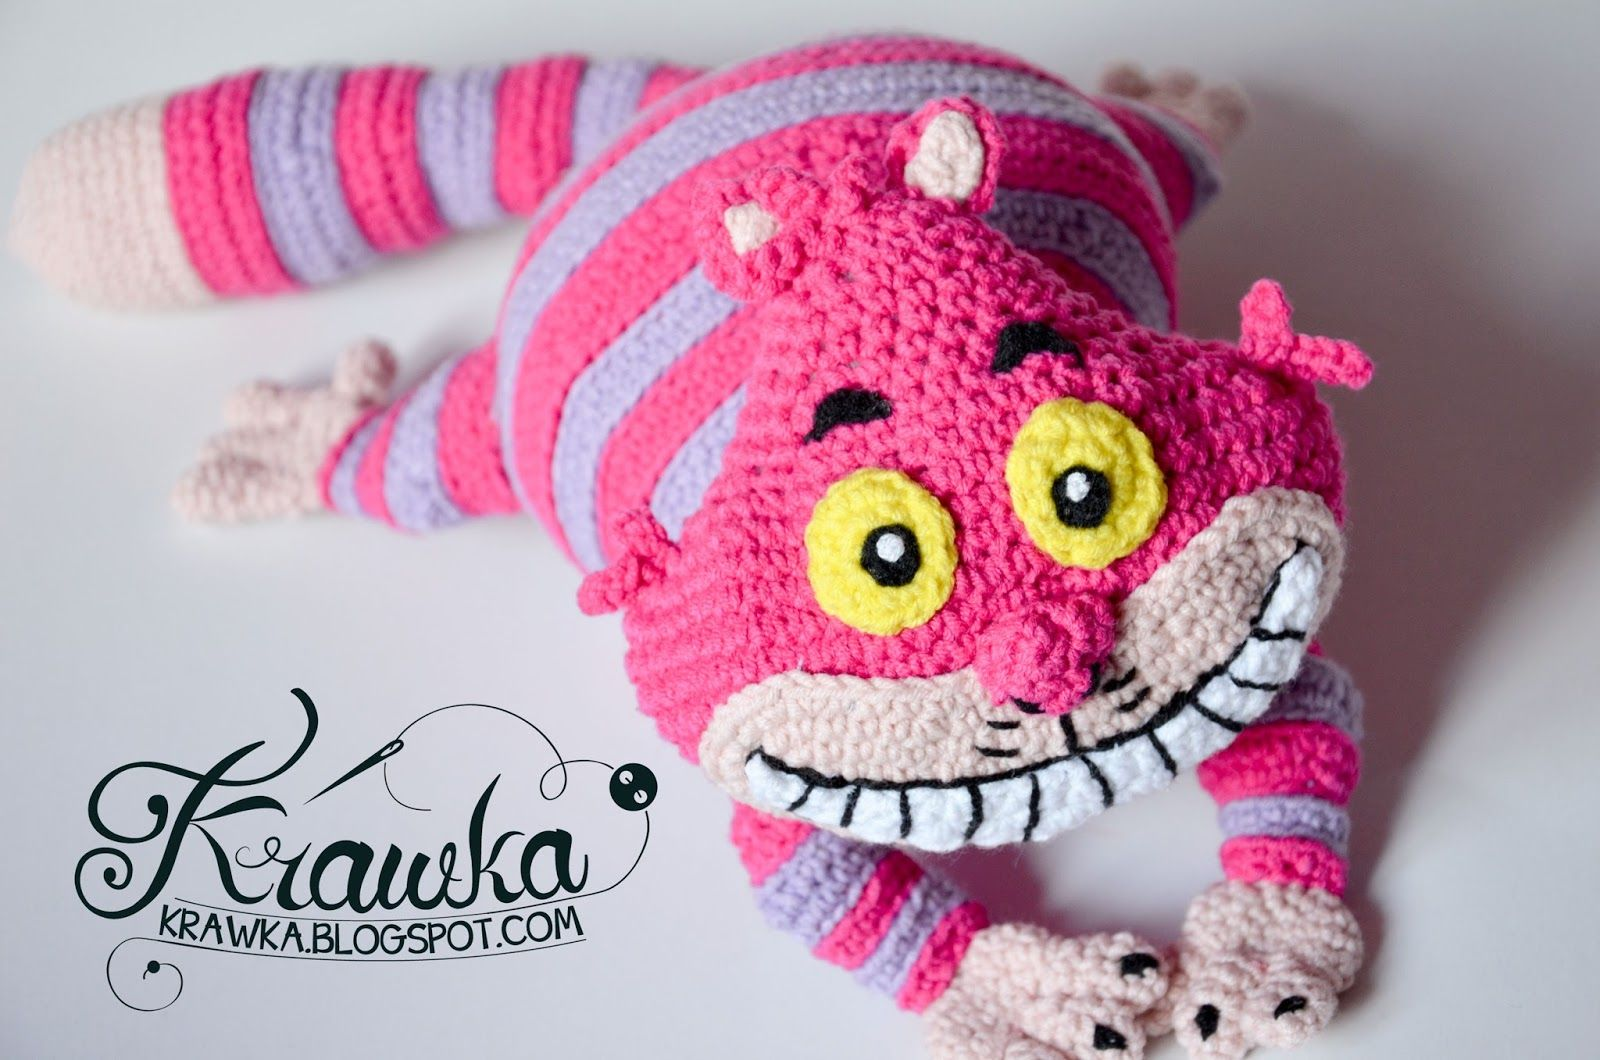 Krawka cheshire cat crochet pattern inspired by disneys alice in krawka cheshire cat crochet pattern inspired by disneys alice in wonderland pattern by krawka bankloansurffo Image collections